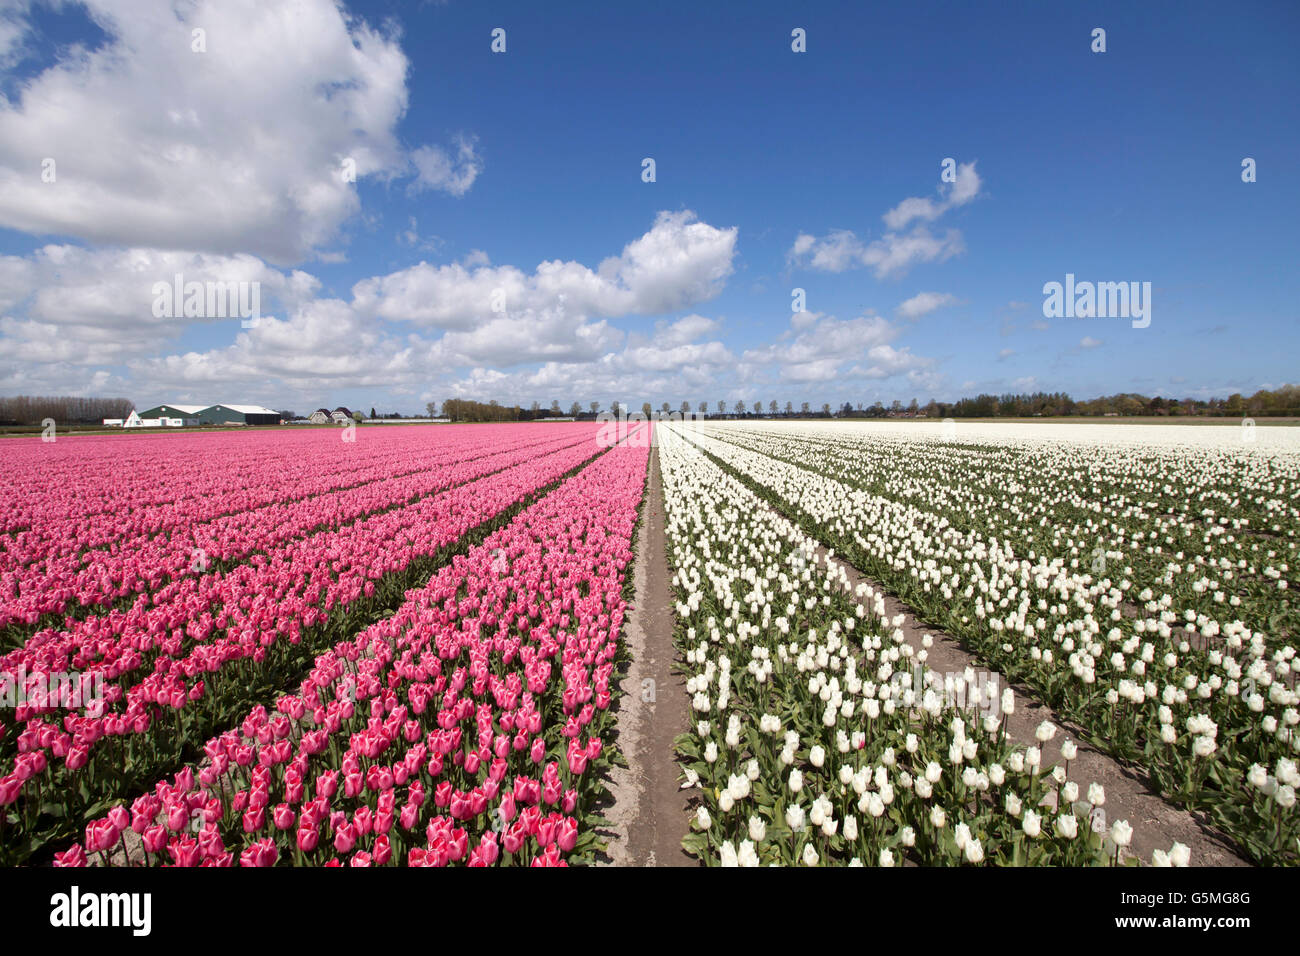 Pink and white tulips in a row in the spring with a blue sky. Stock Photo